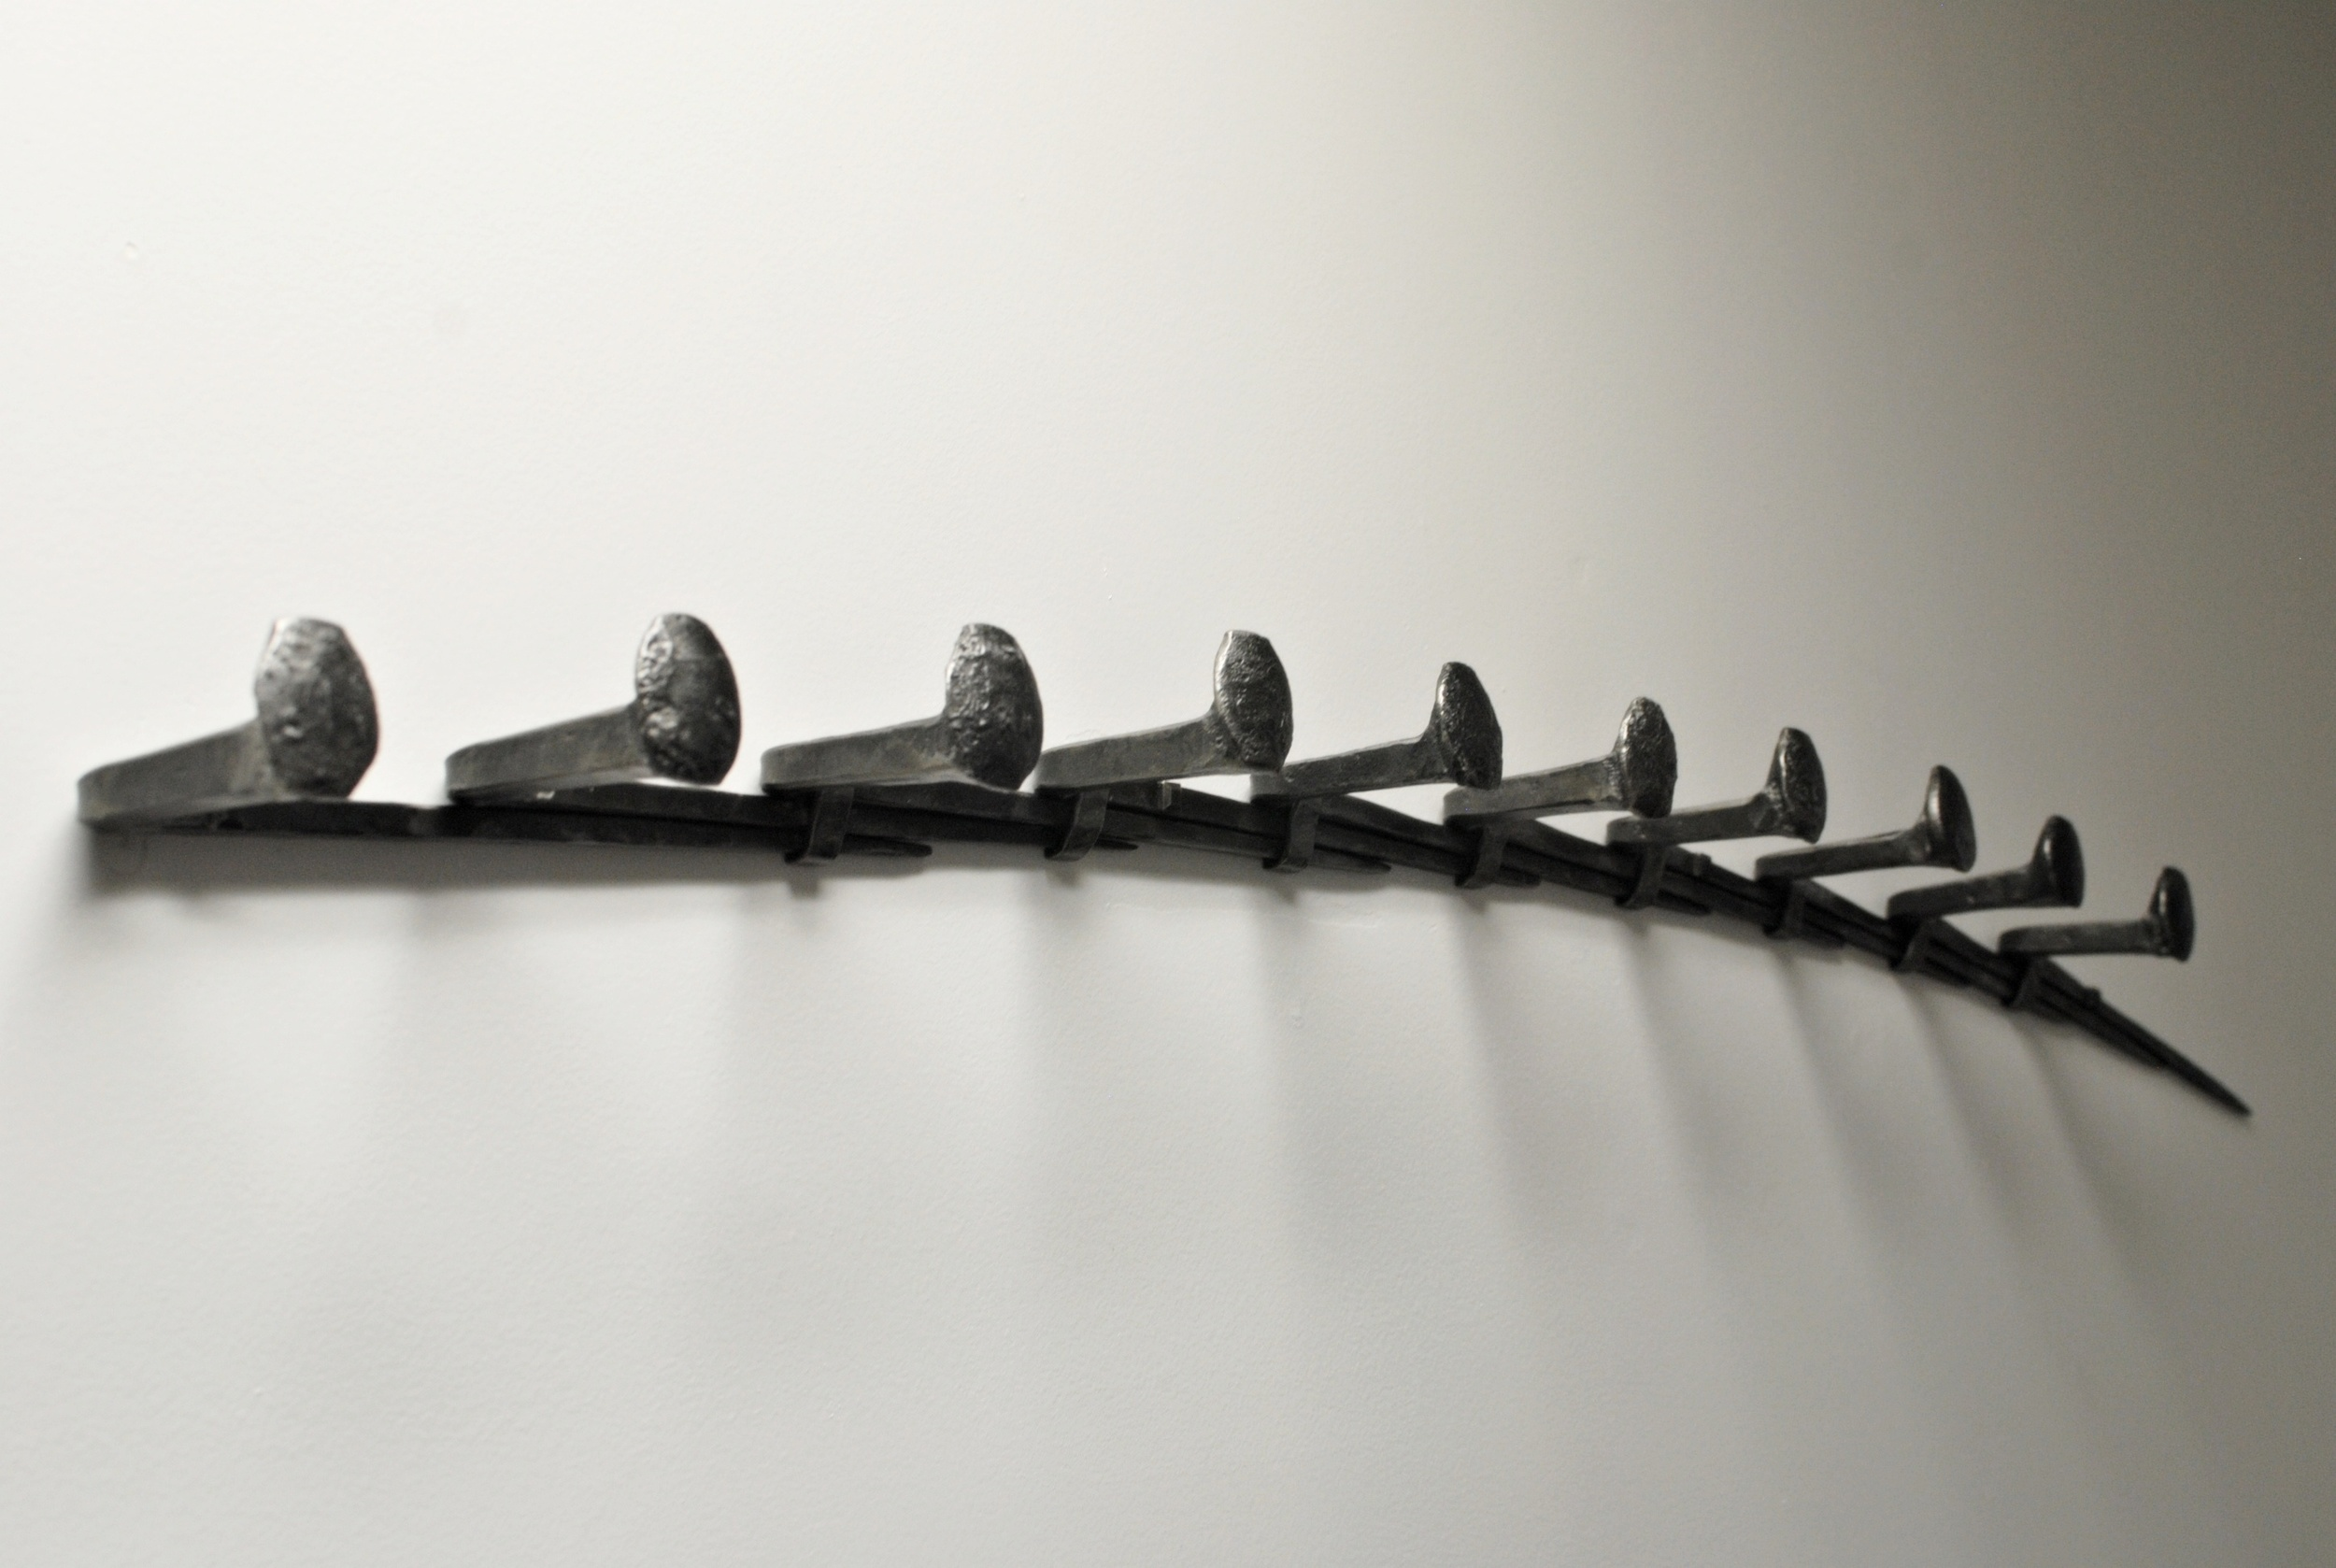 Forged Railroad Spike Coat Rack